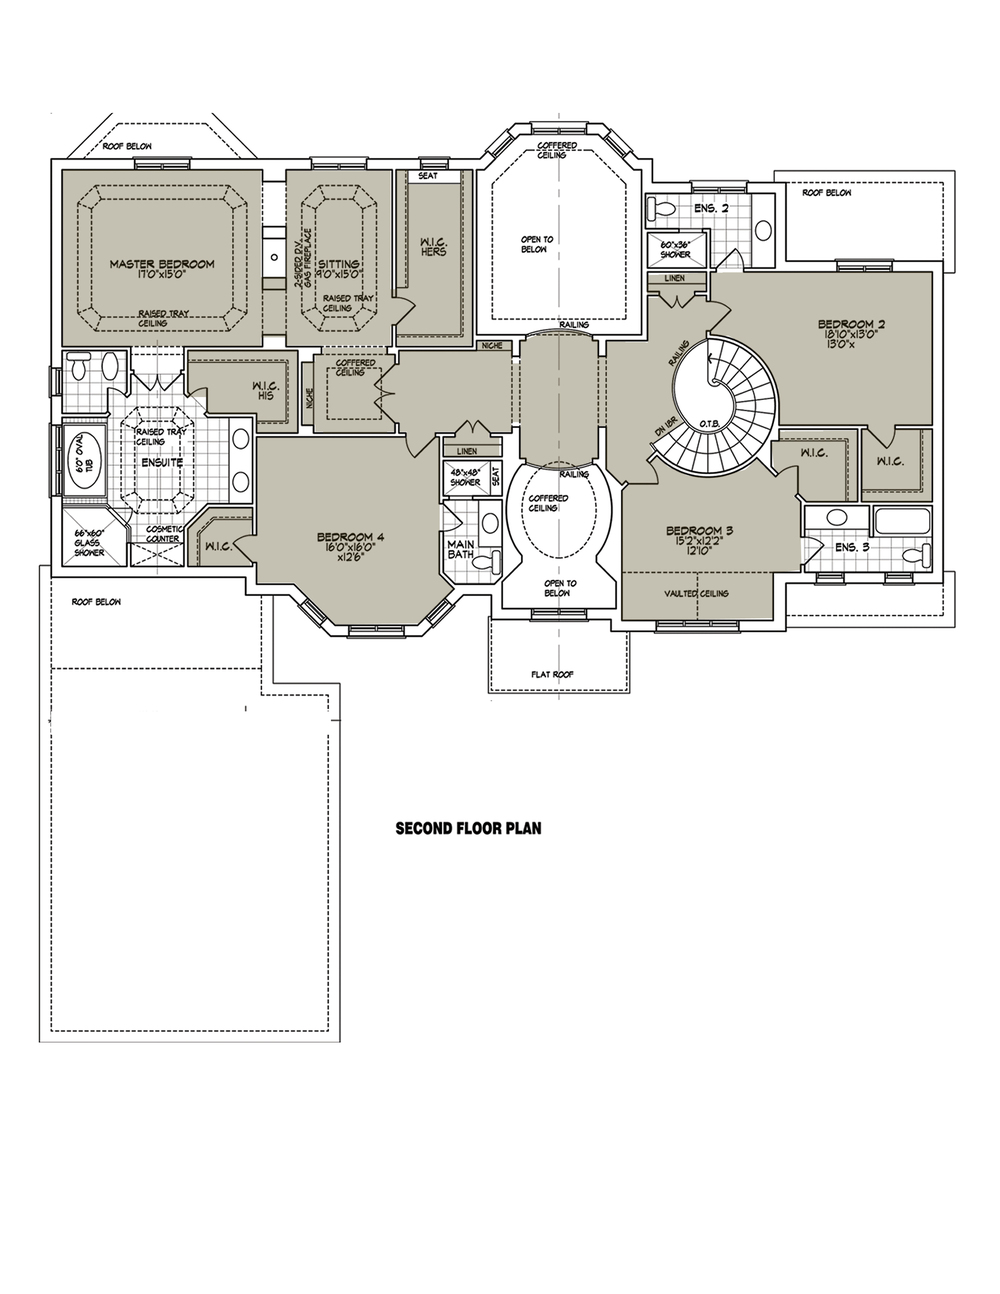 2nd Floor Hardwood Layout - Toscana.jpg